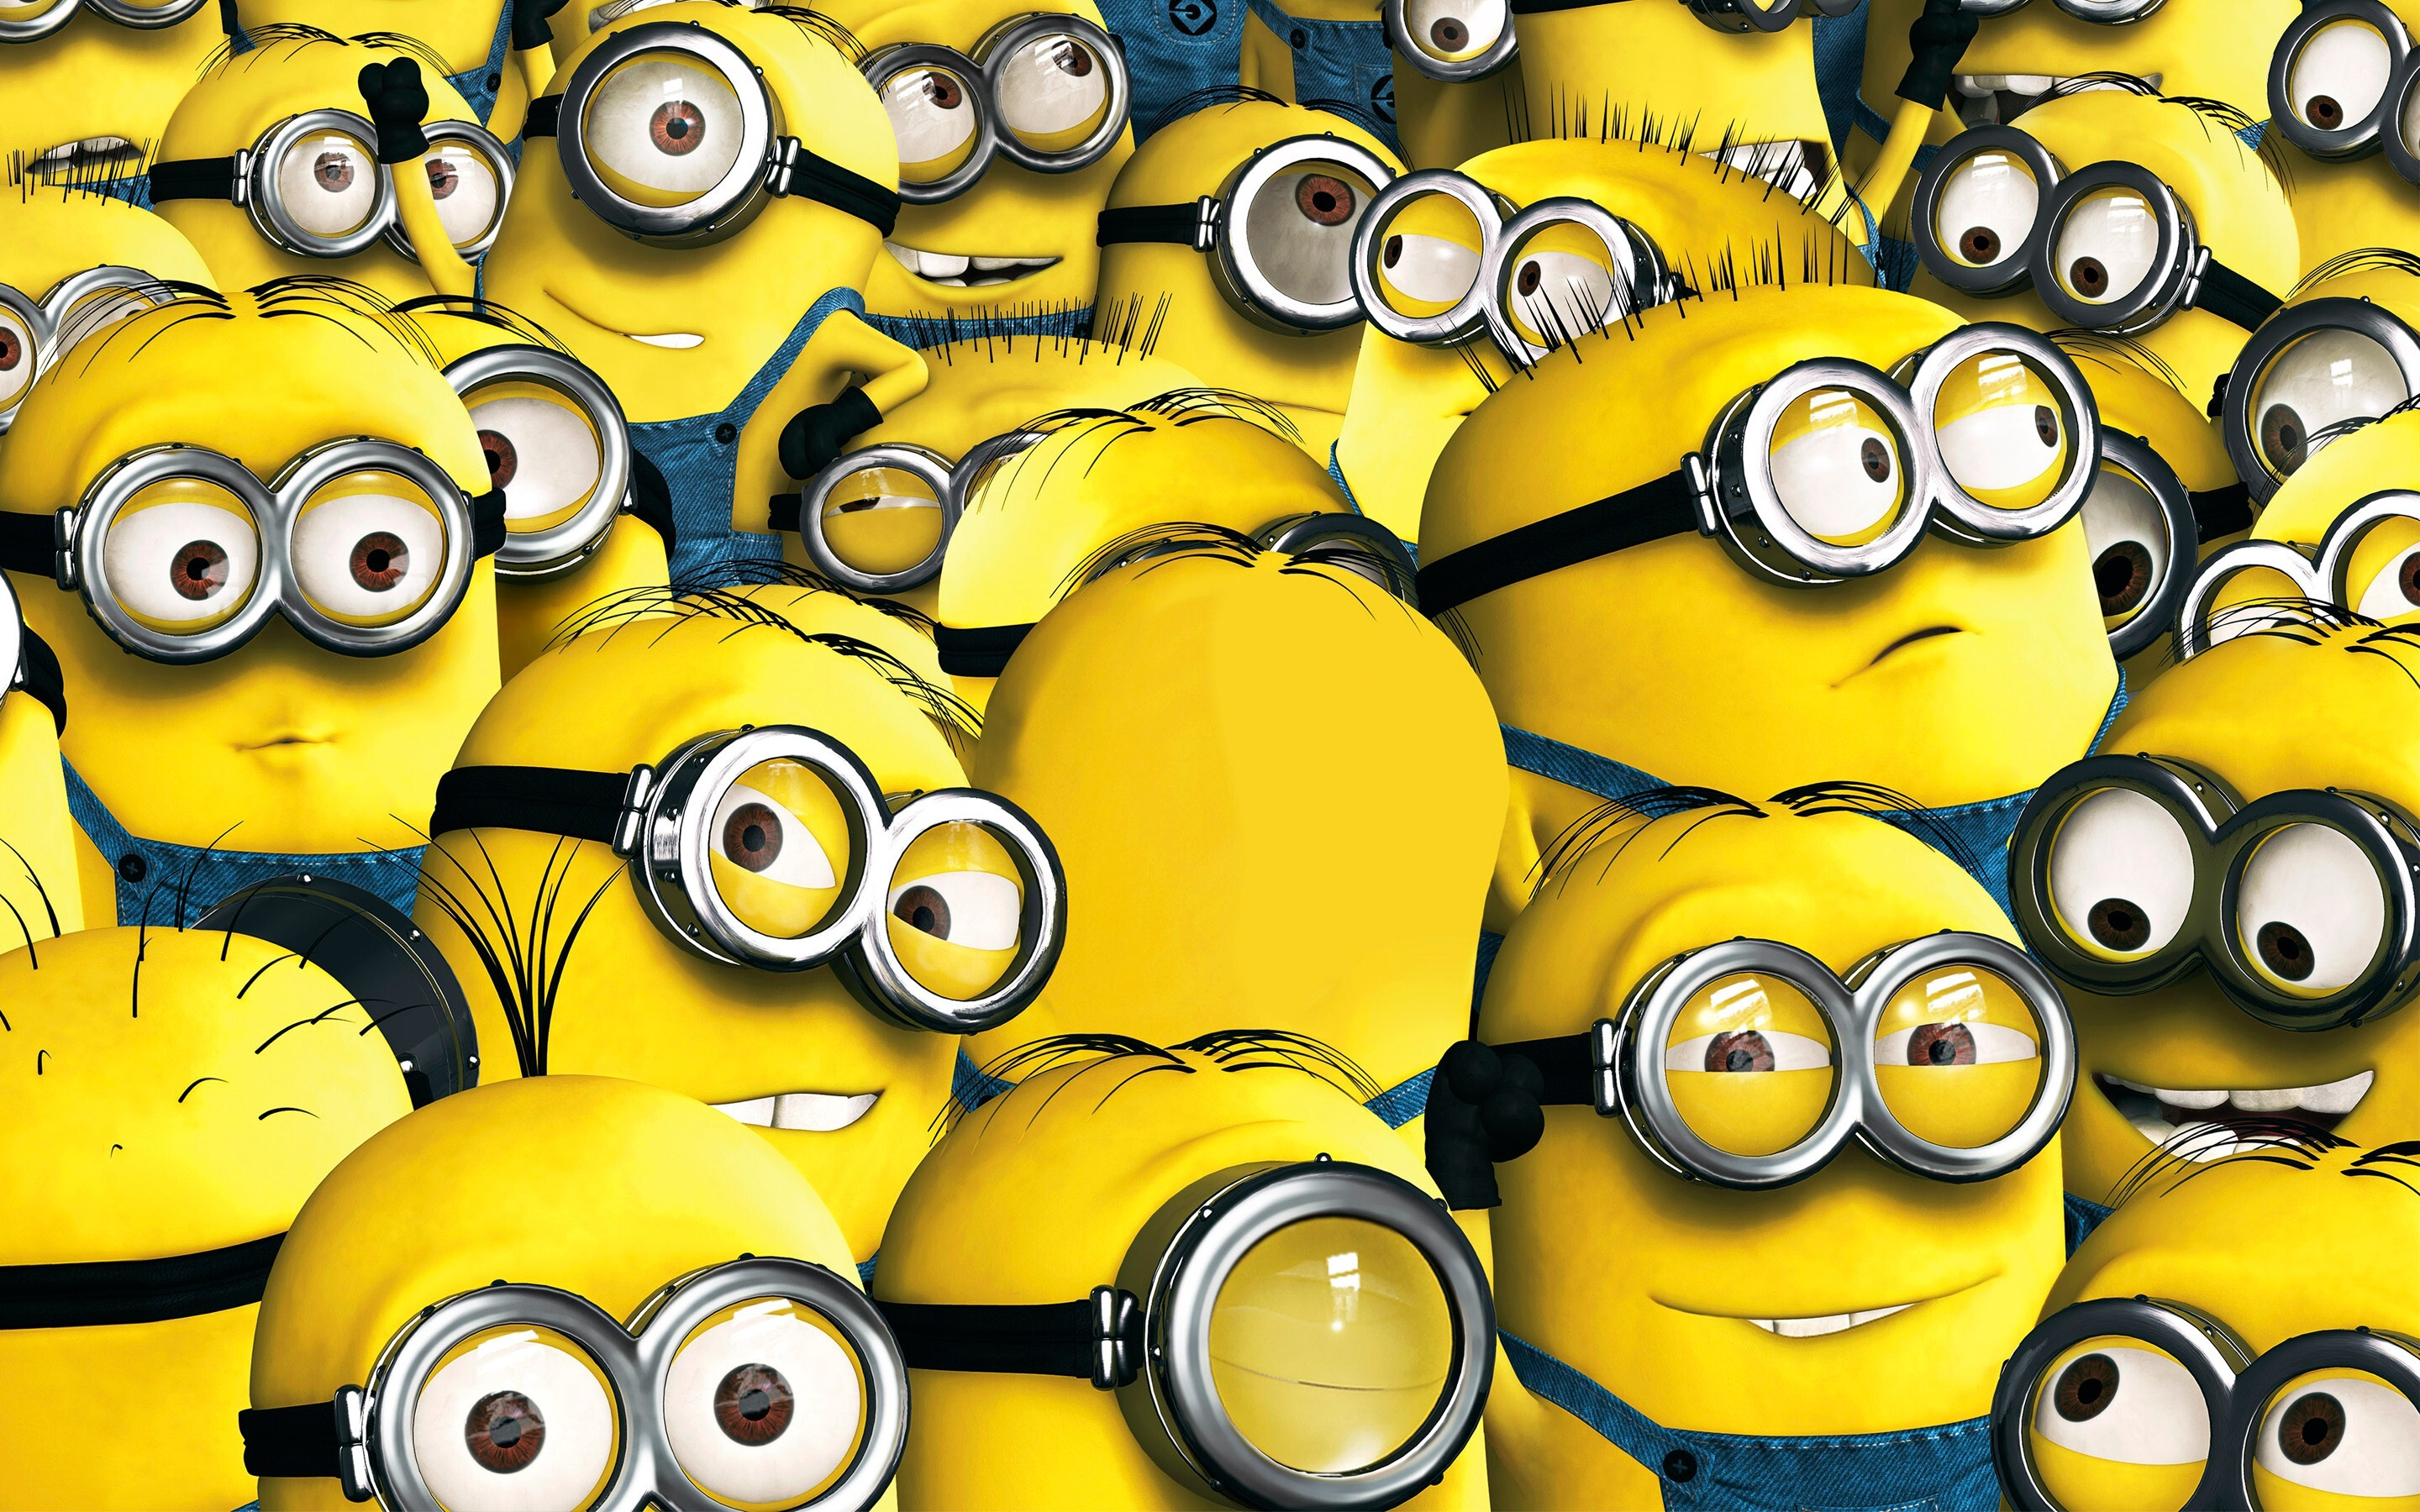 2880x1800 despicable me minions macbook pro retina hd 4k wallpapers